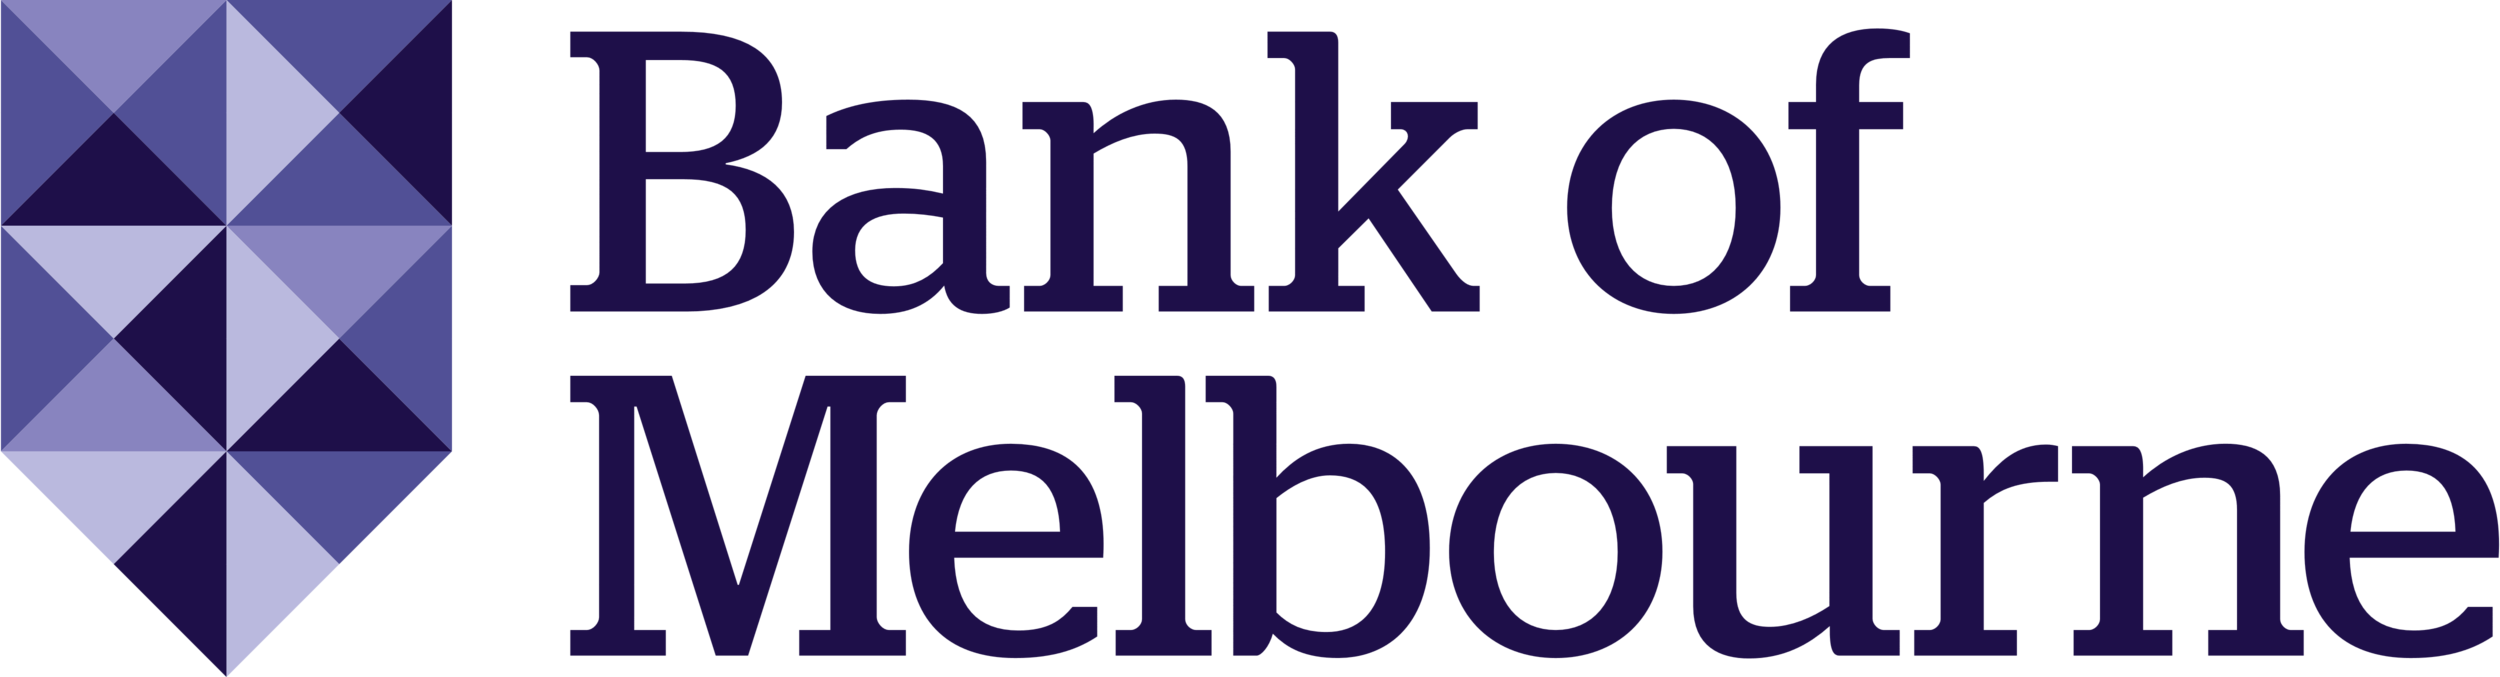 bank-of-melbourne-logo_transparent.png